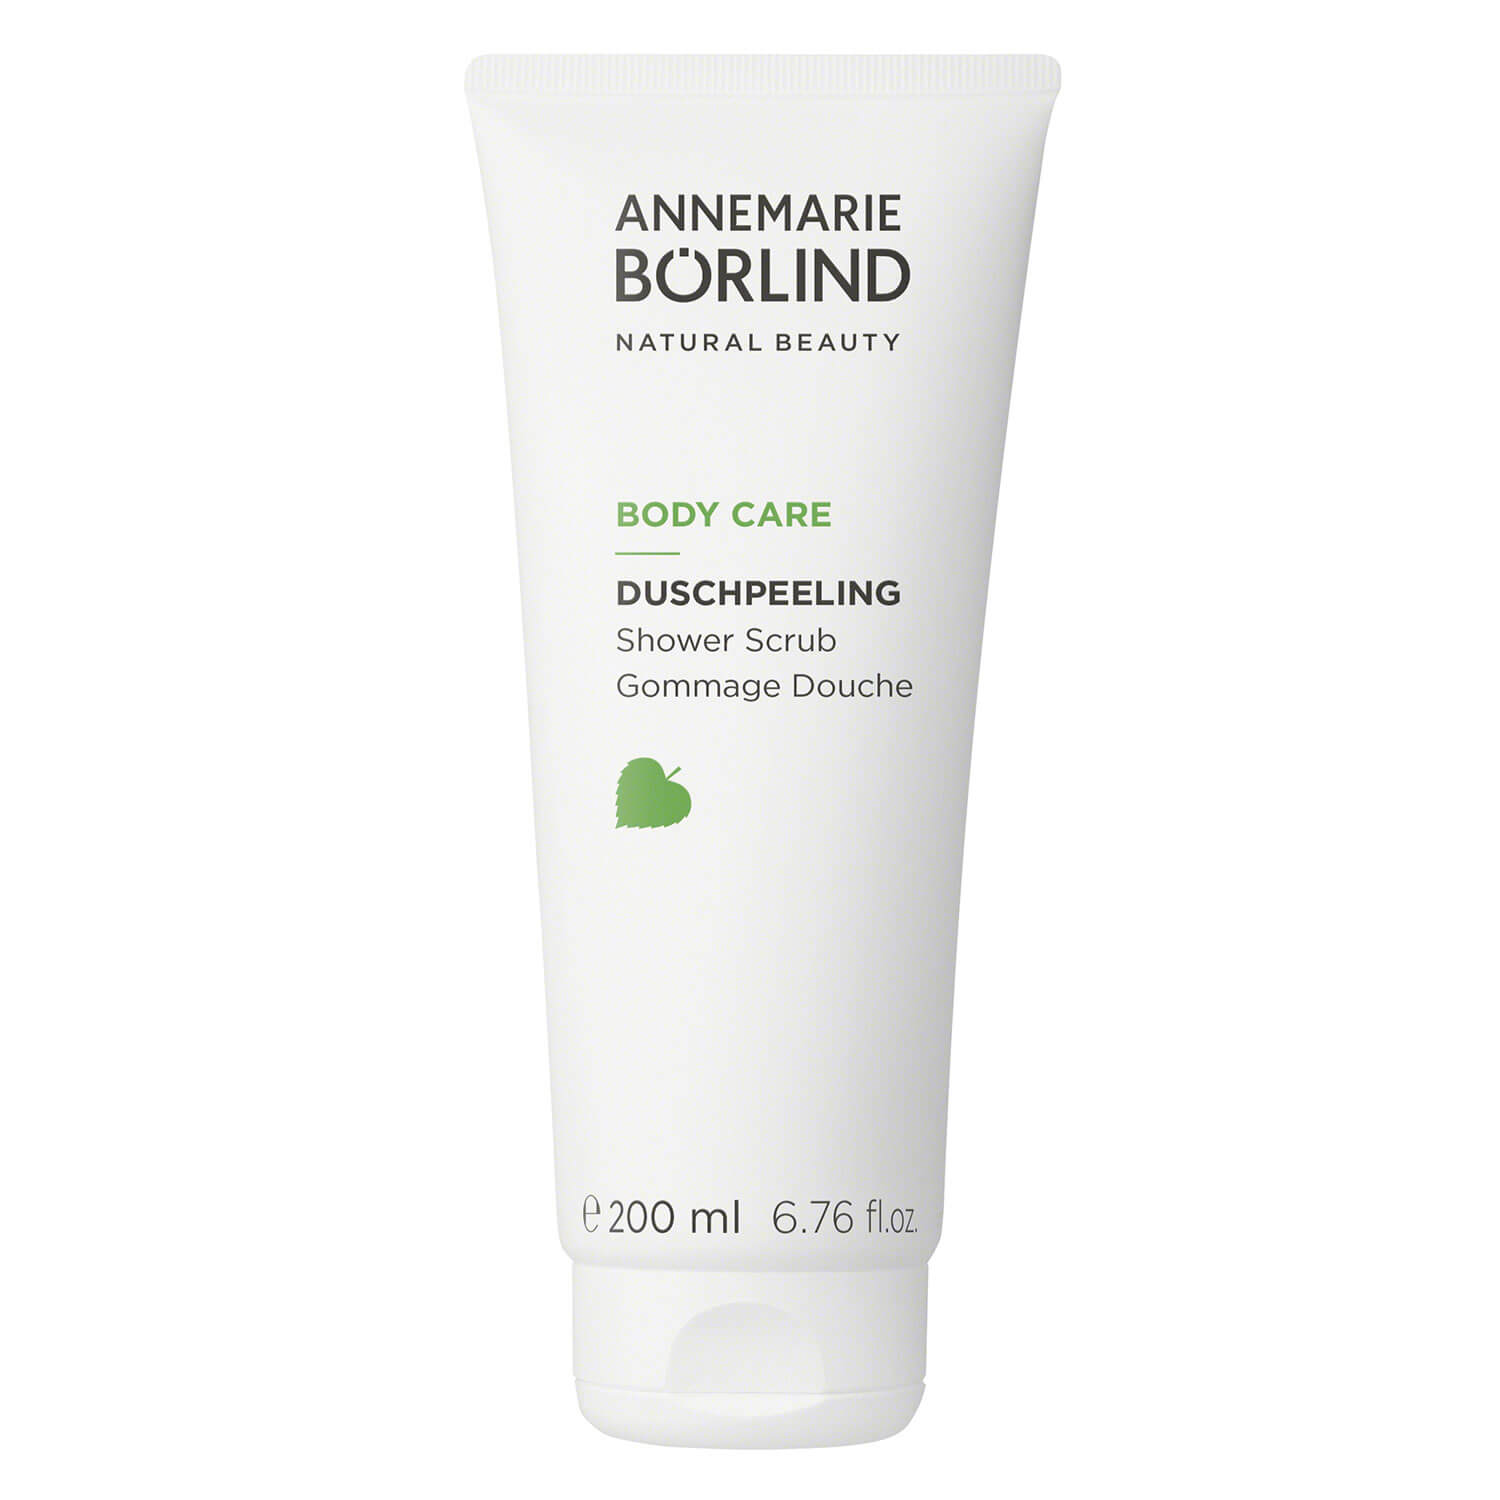 Annemarie Börlind Body Care - Duschpeeling